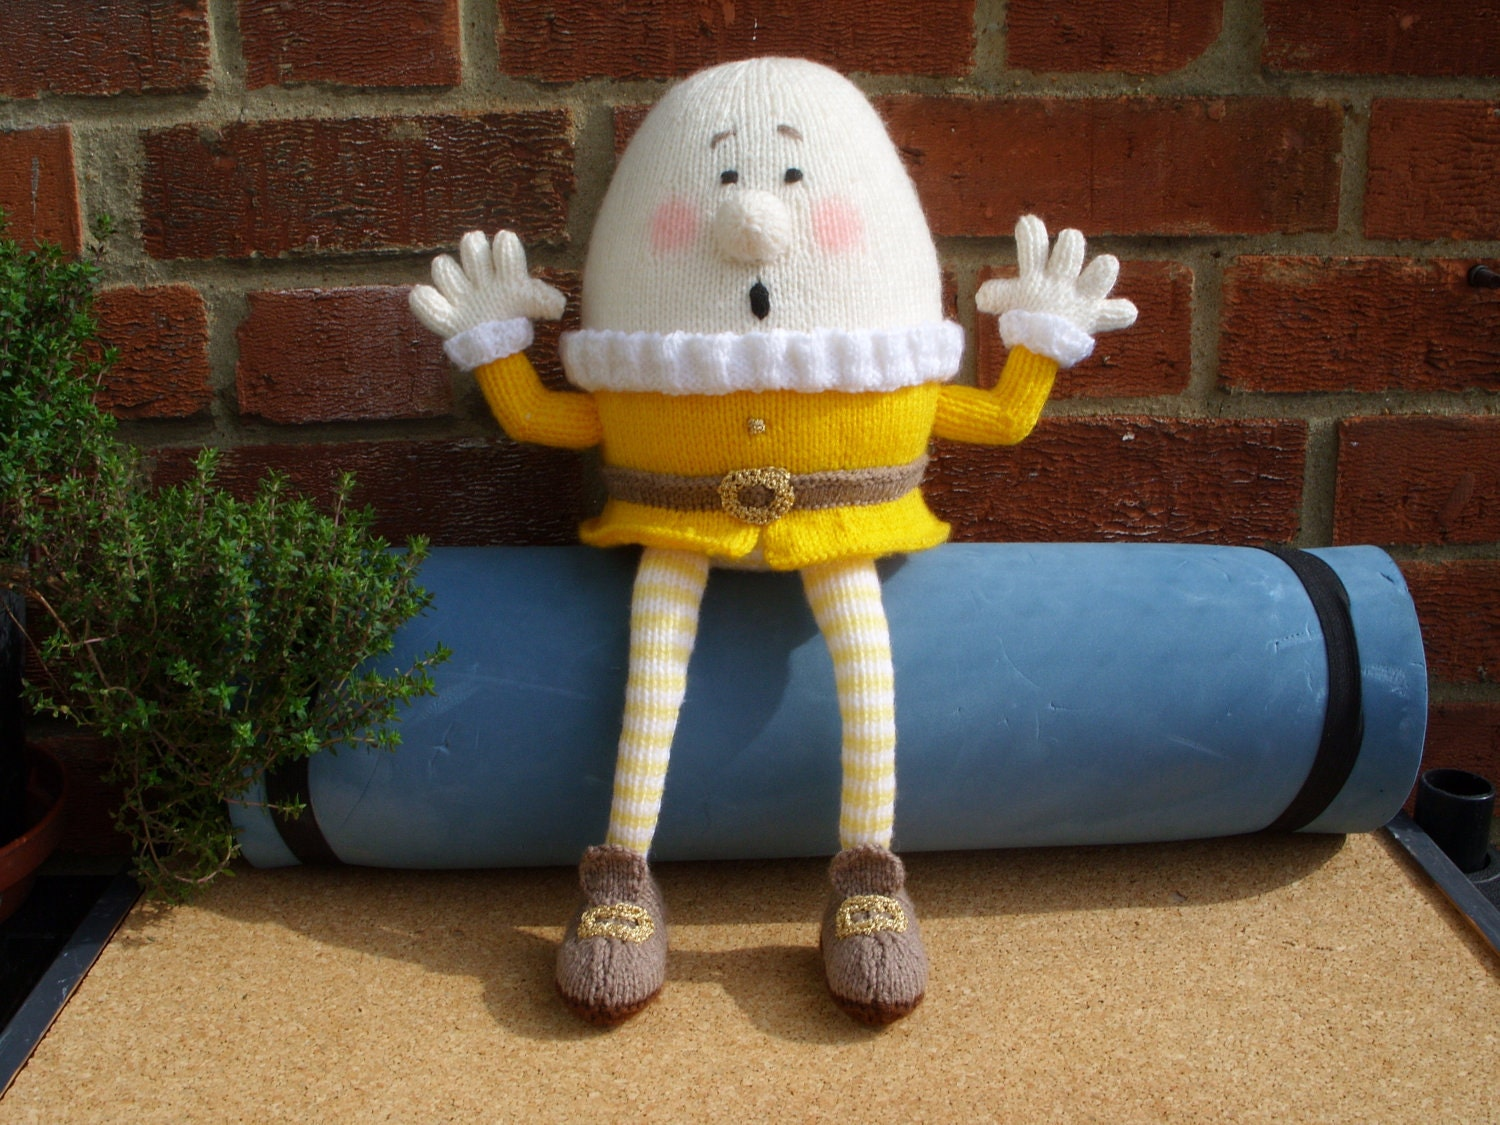 Knitting Pattern For Humpty Dumpty : Hand Knitted Toy Humpty Dumpty from Alan Dart pattern